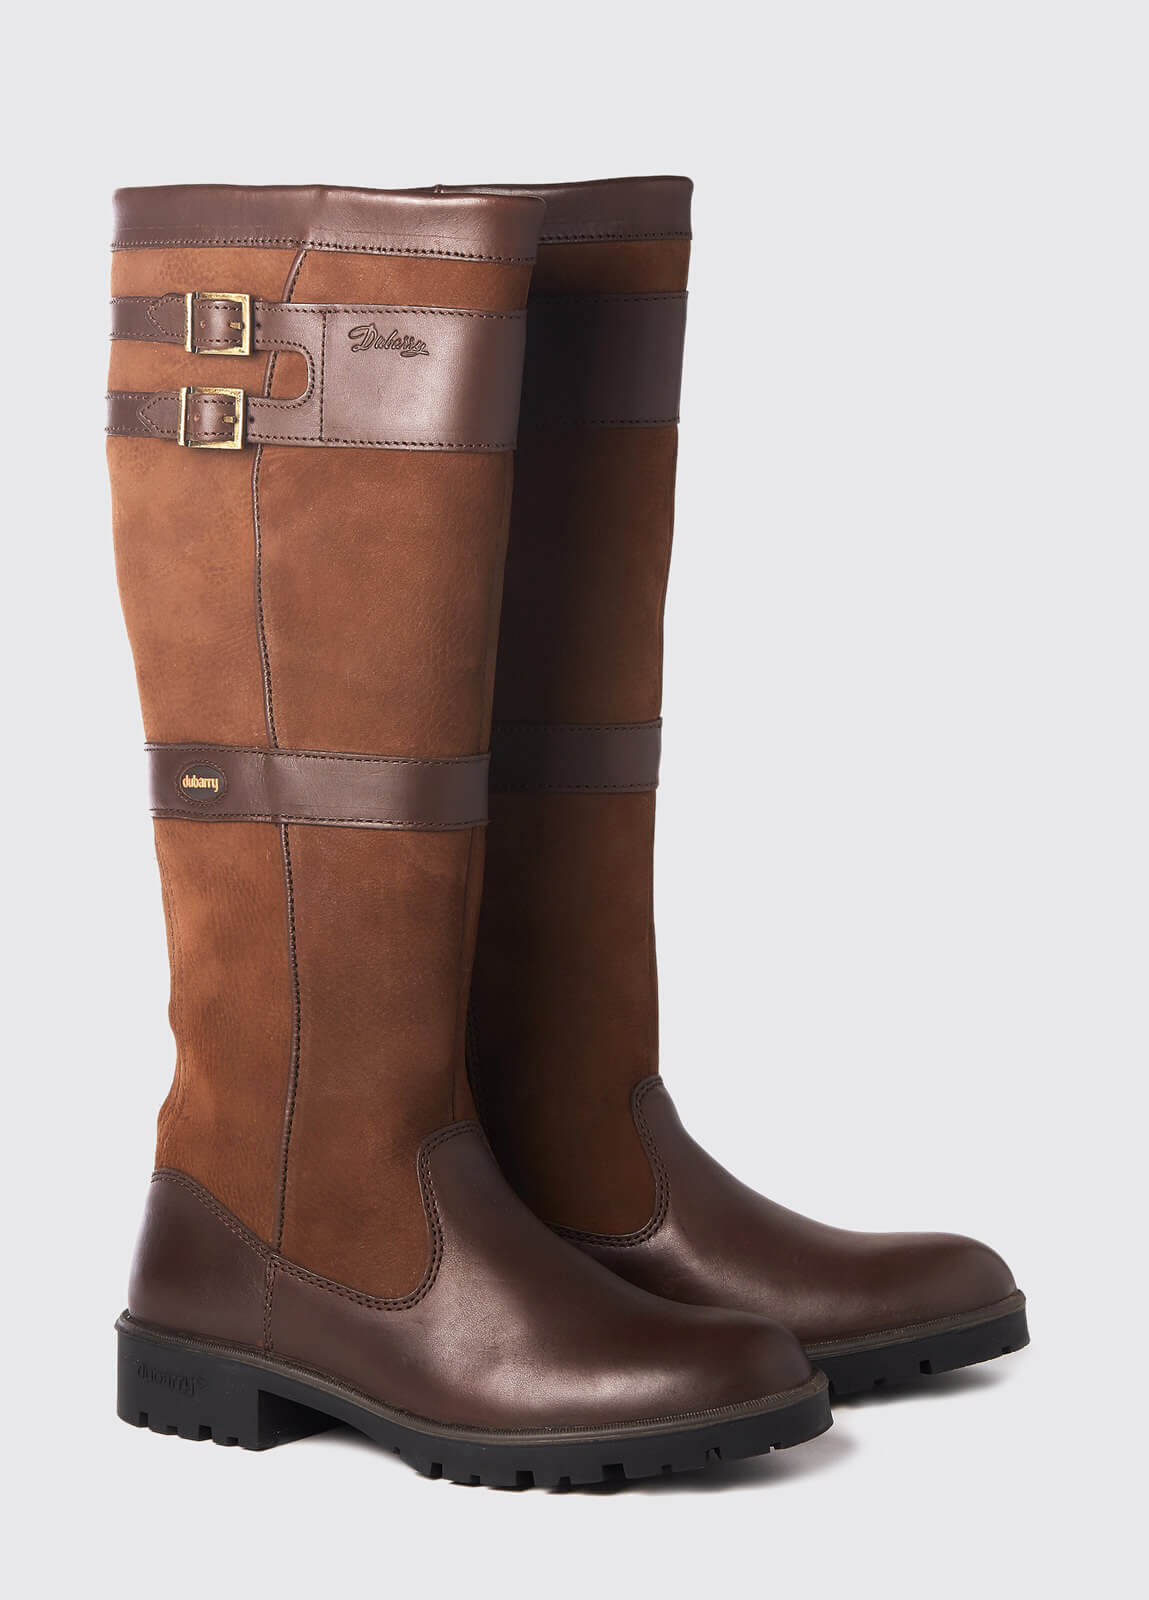 Longford Country Boot - Walnut